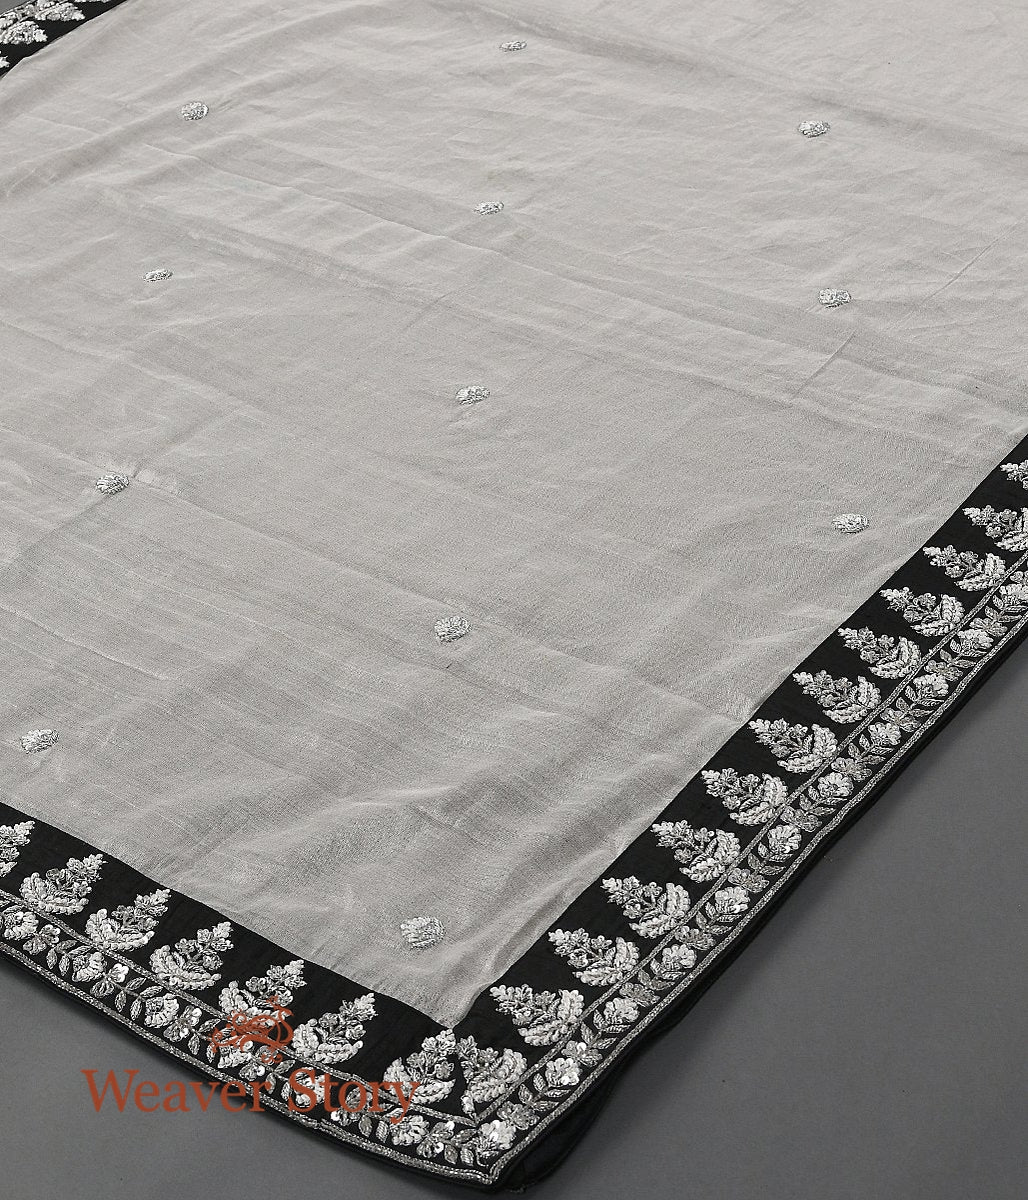 Silver Tissue Zardozi Work Dupatta with Black Border